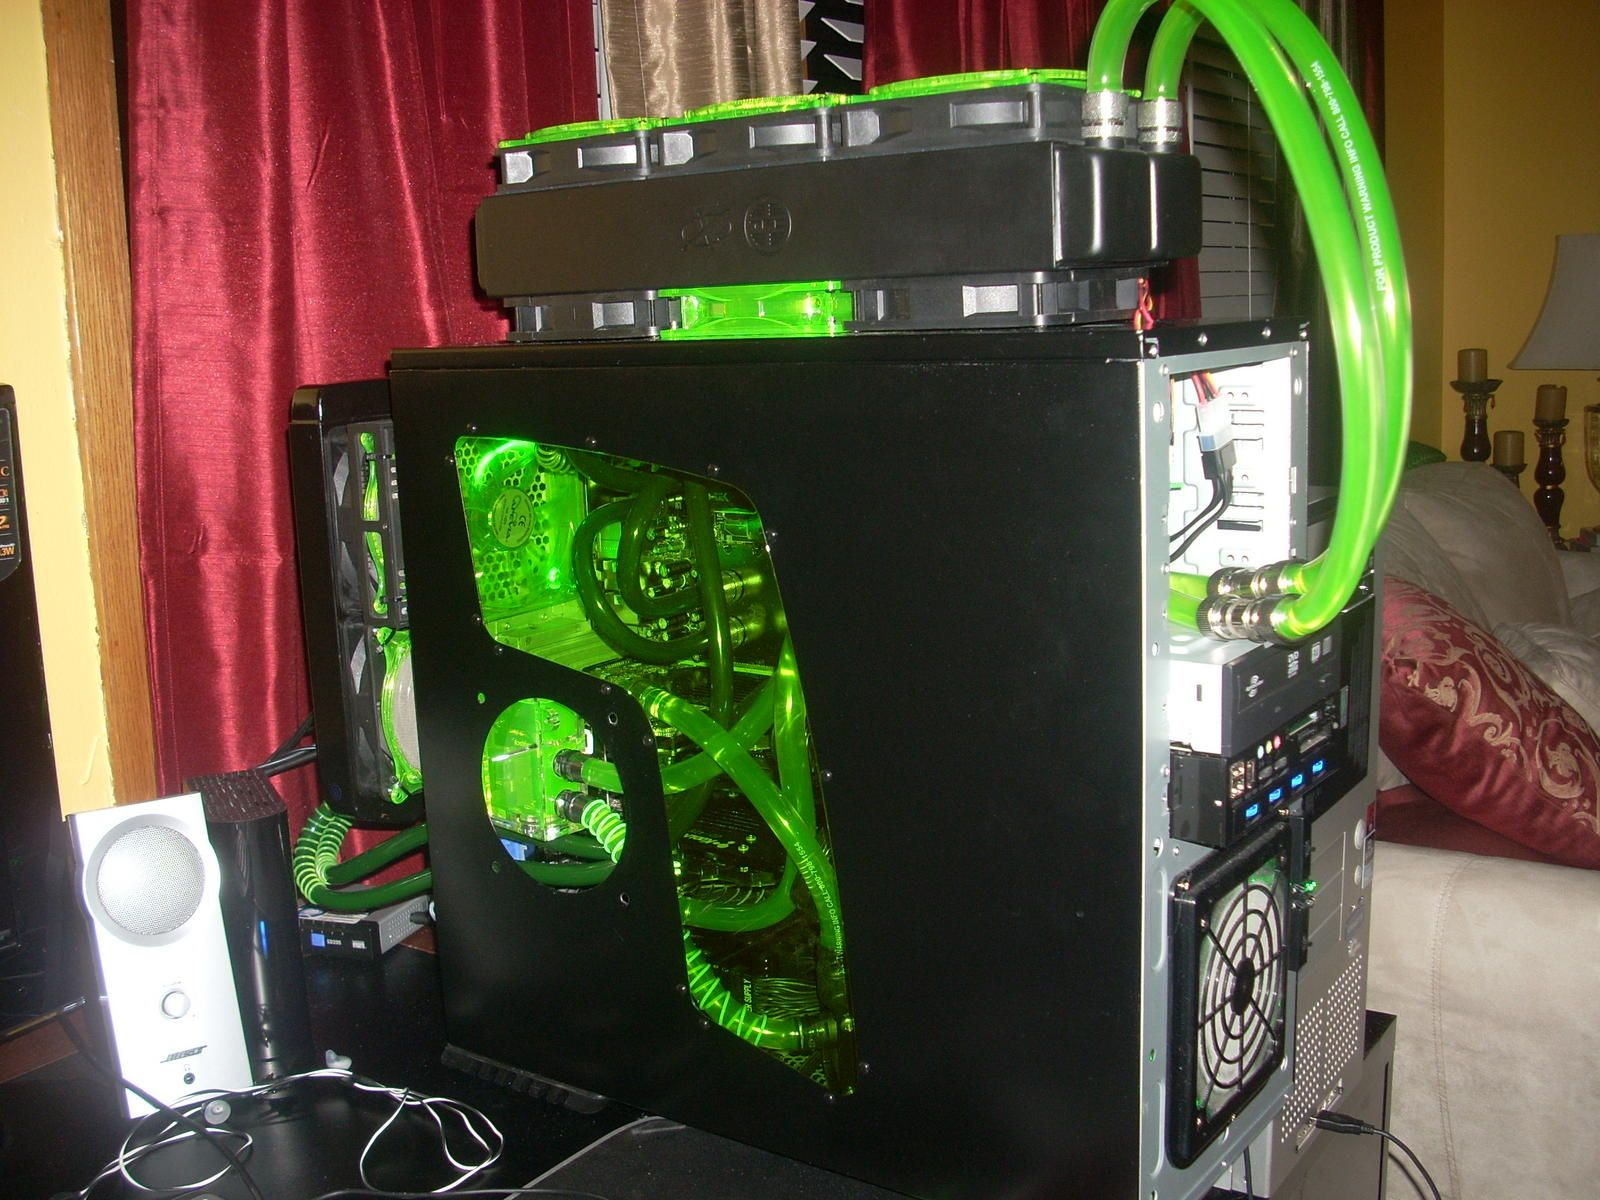 Computer Cases Liquid Cooled Computer Cases A Prebuilt Water Cooled Computer Case Computergehause Pc Gehause Computer